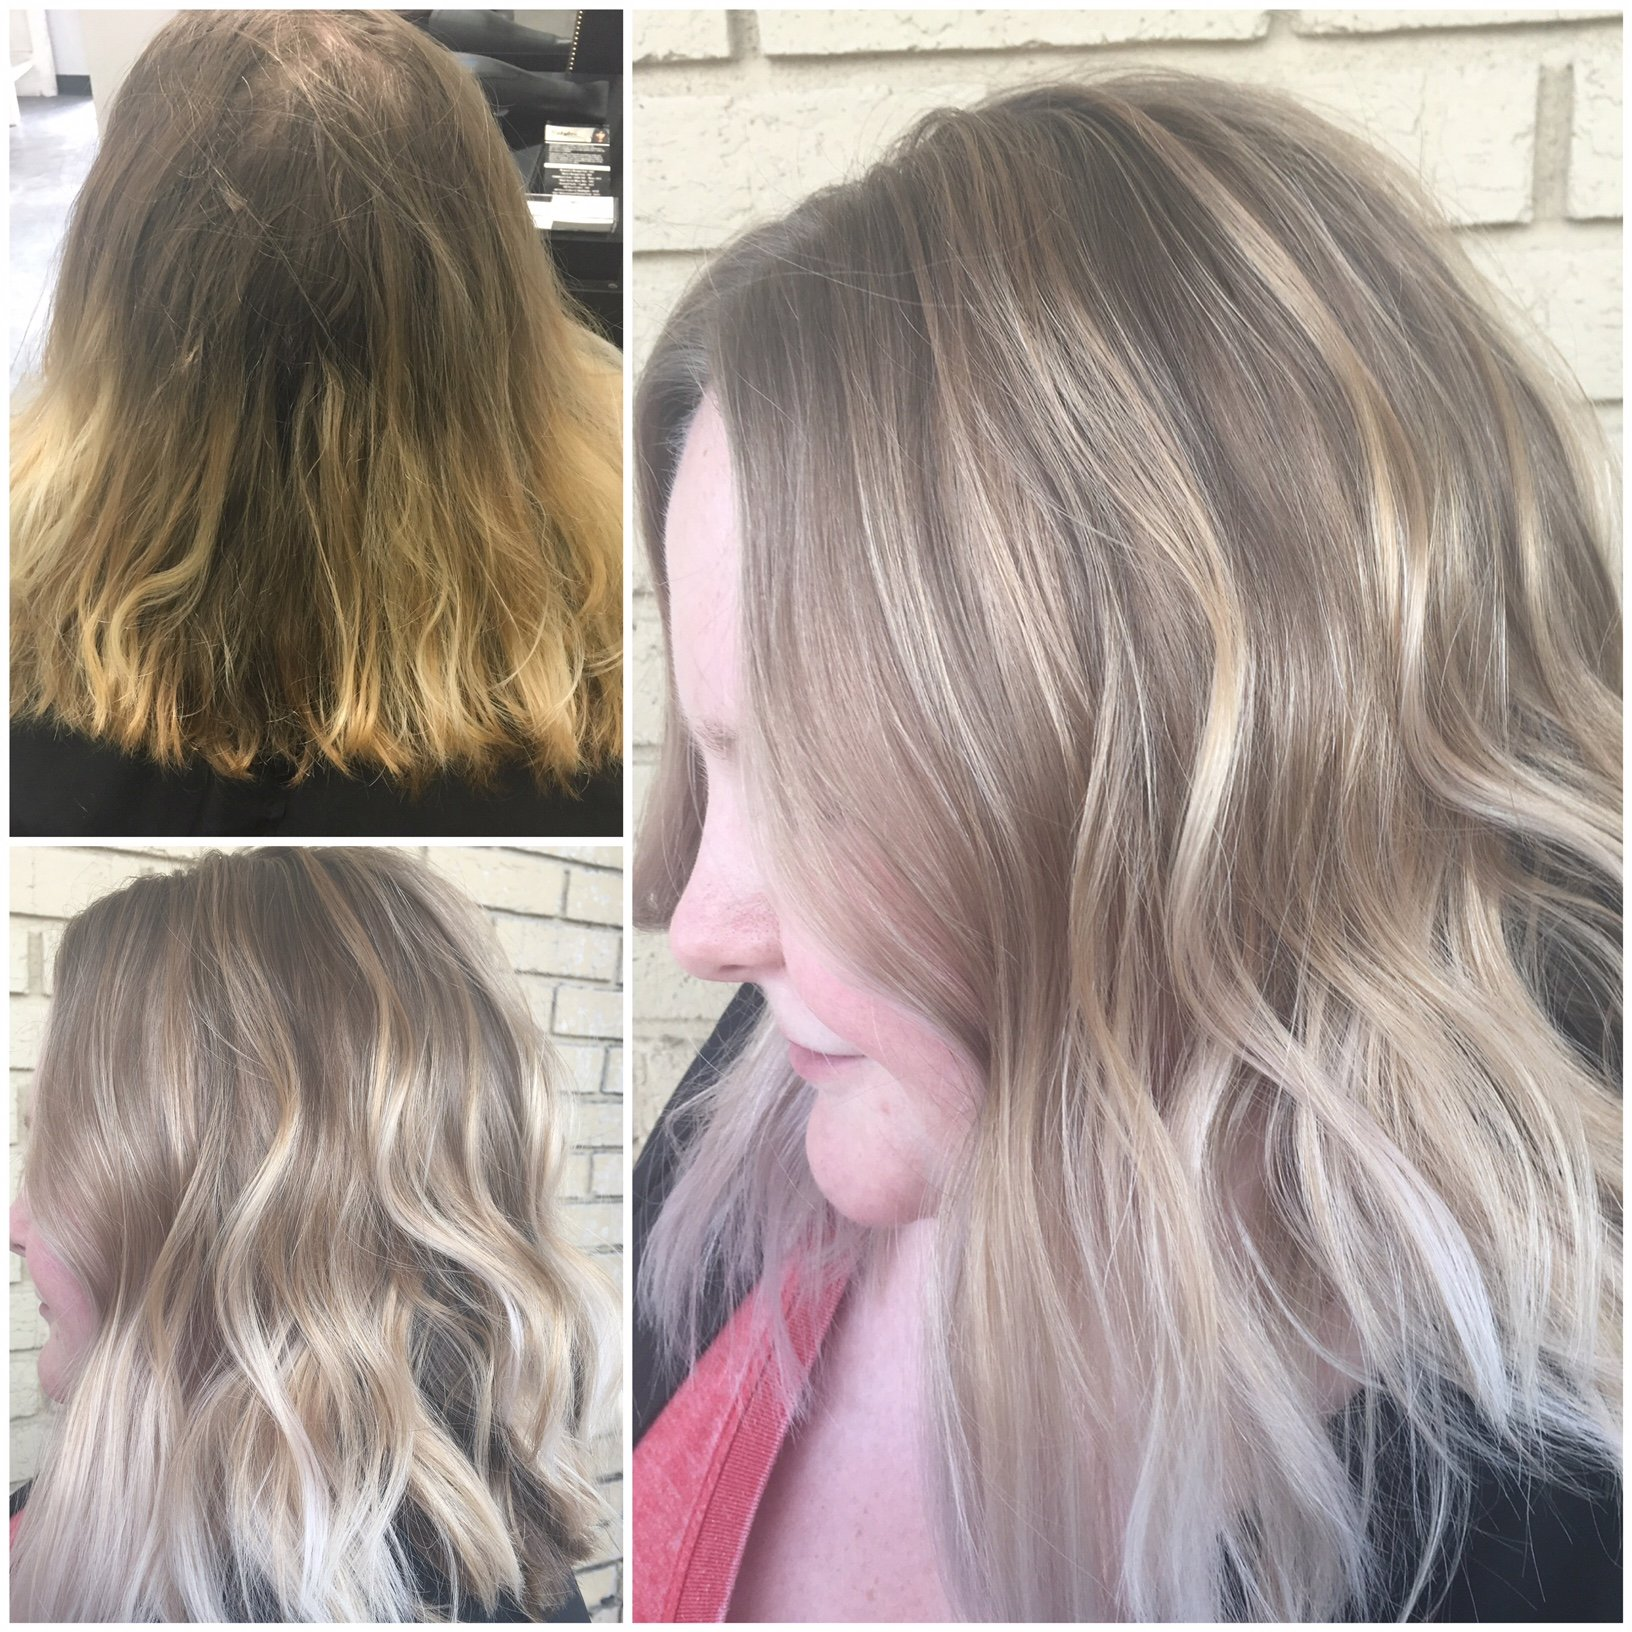 Lighter and Brighter For The College Girl